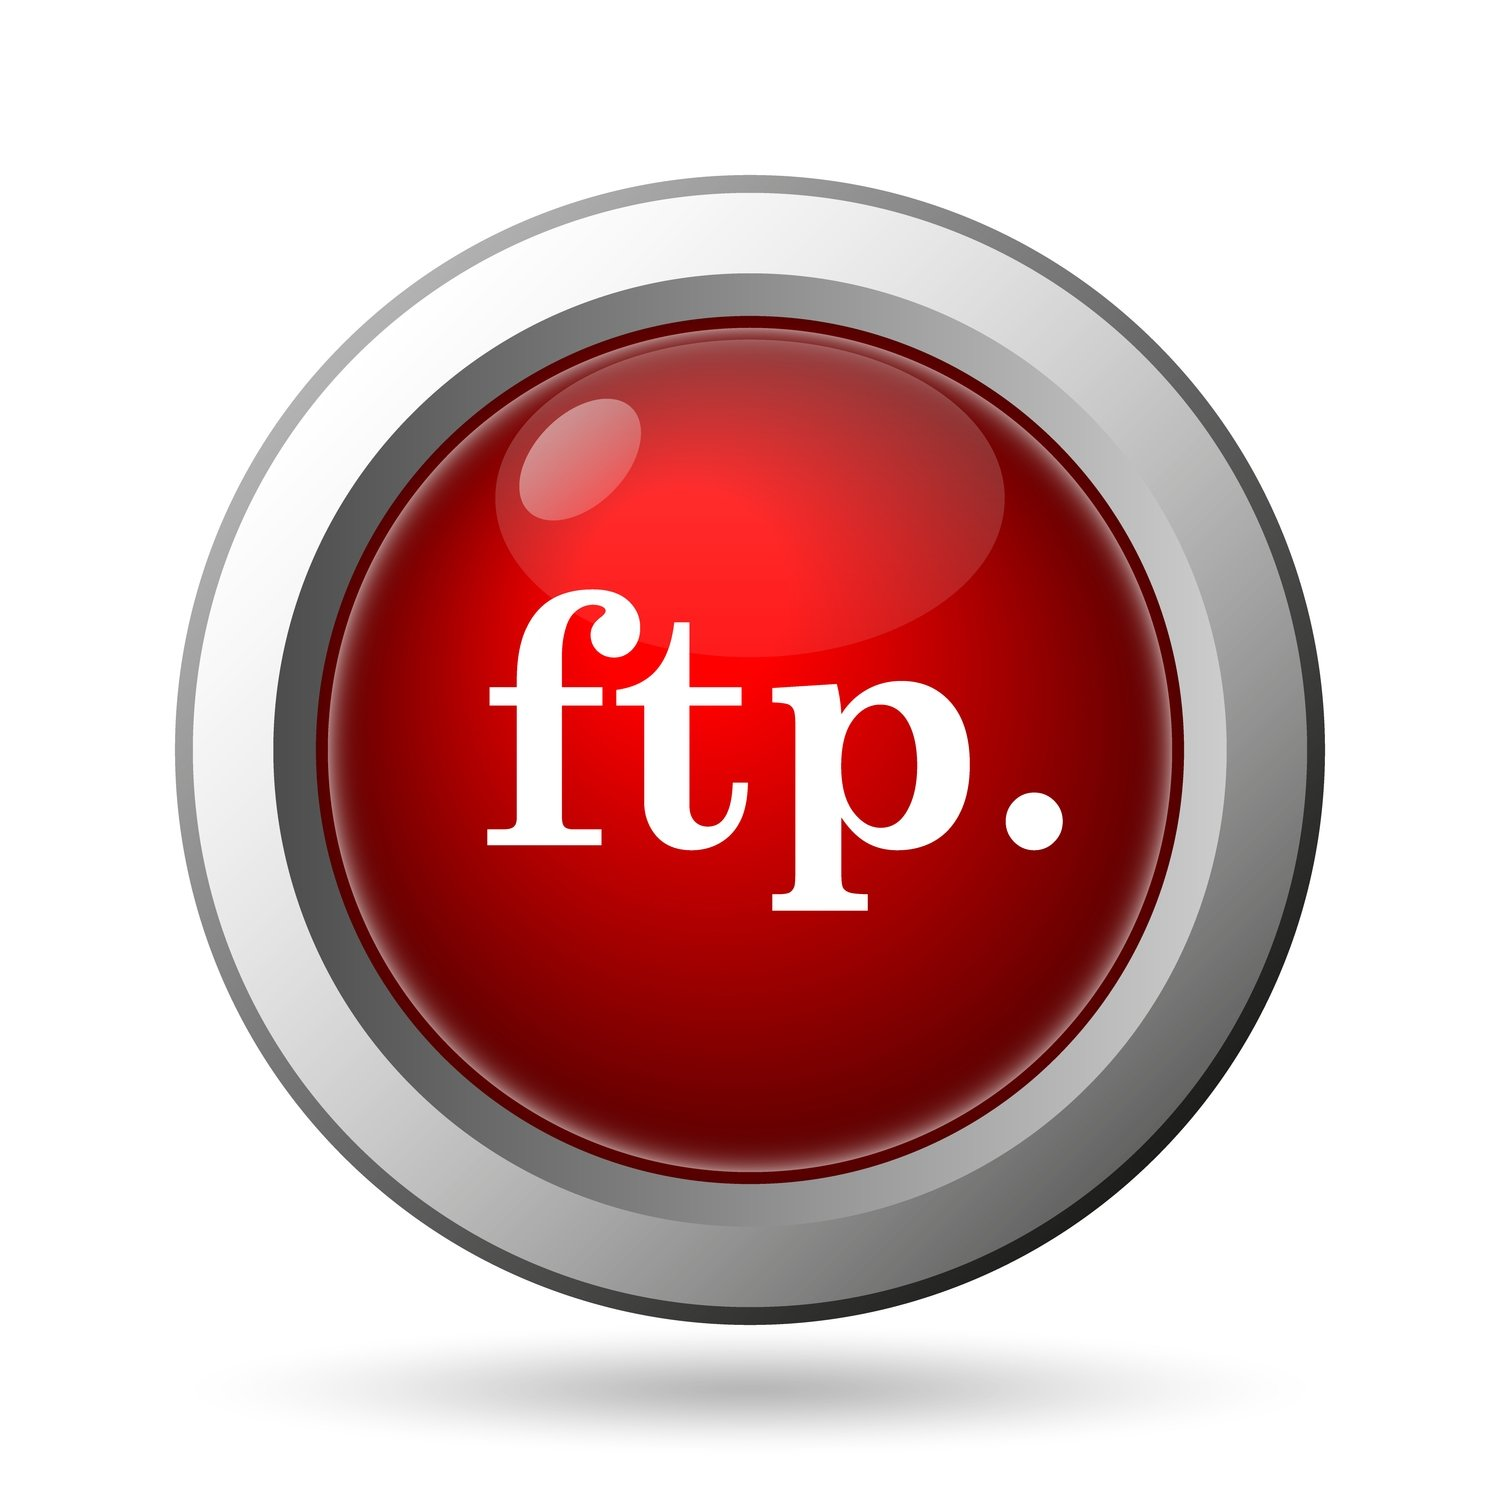 FTP File Upload (File Transfer Protocol)